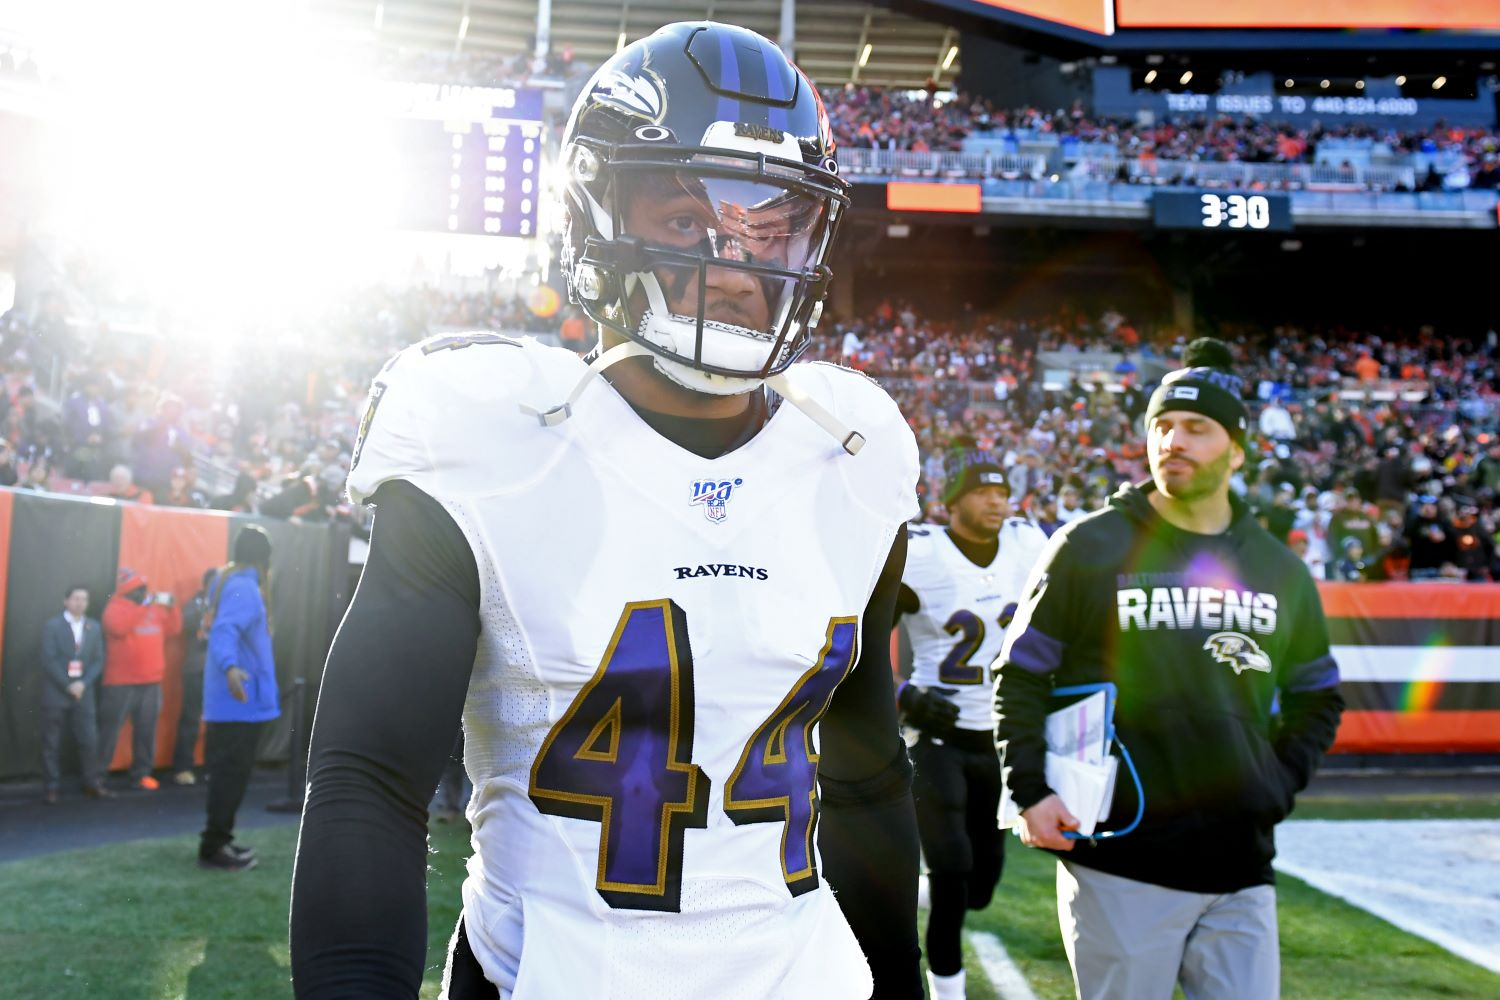 With Marlon Humphrey testing positive for COVID-19, the Baltimore Ravens may be without their $97 million star against the Colts.